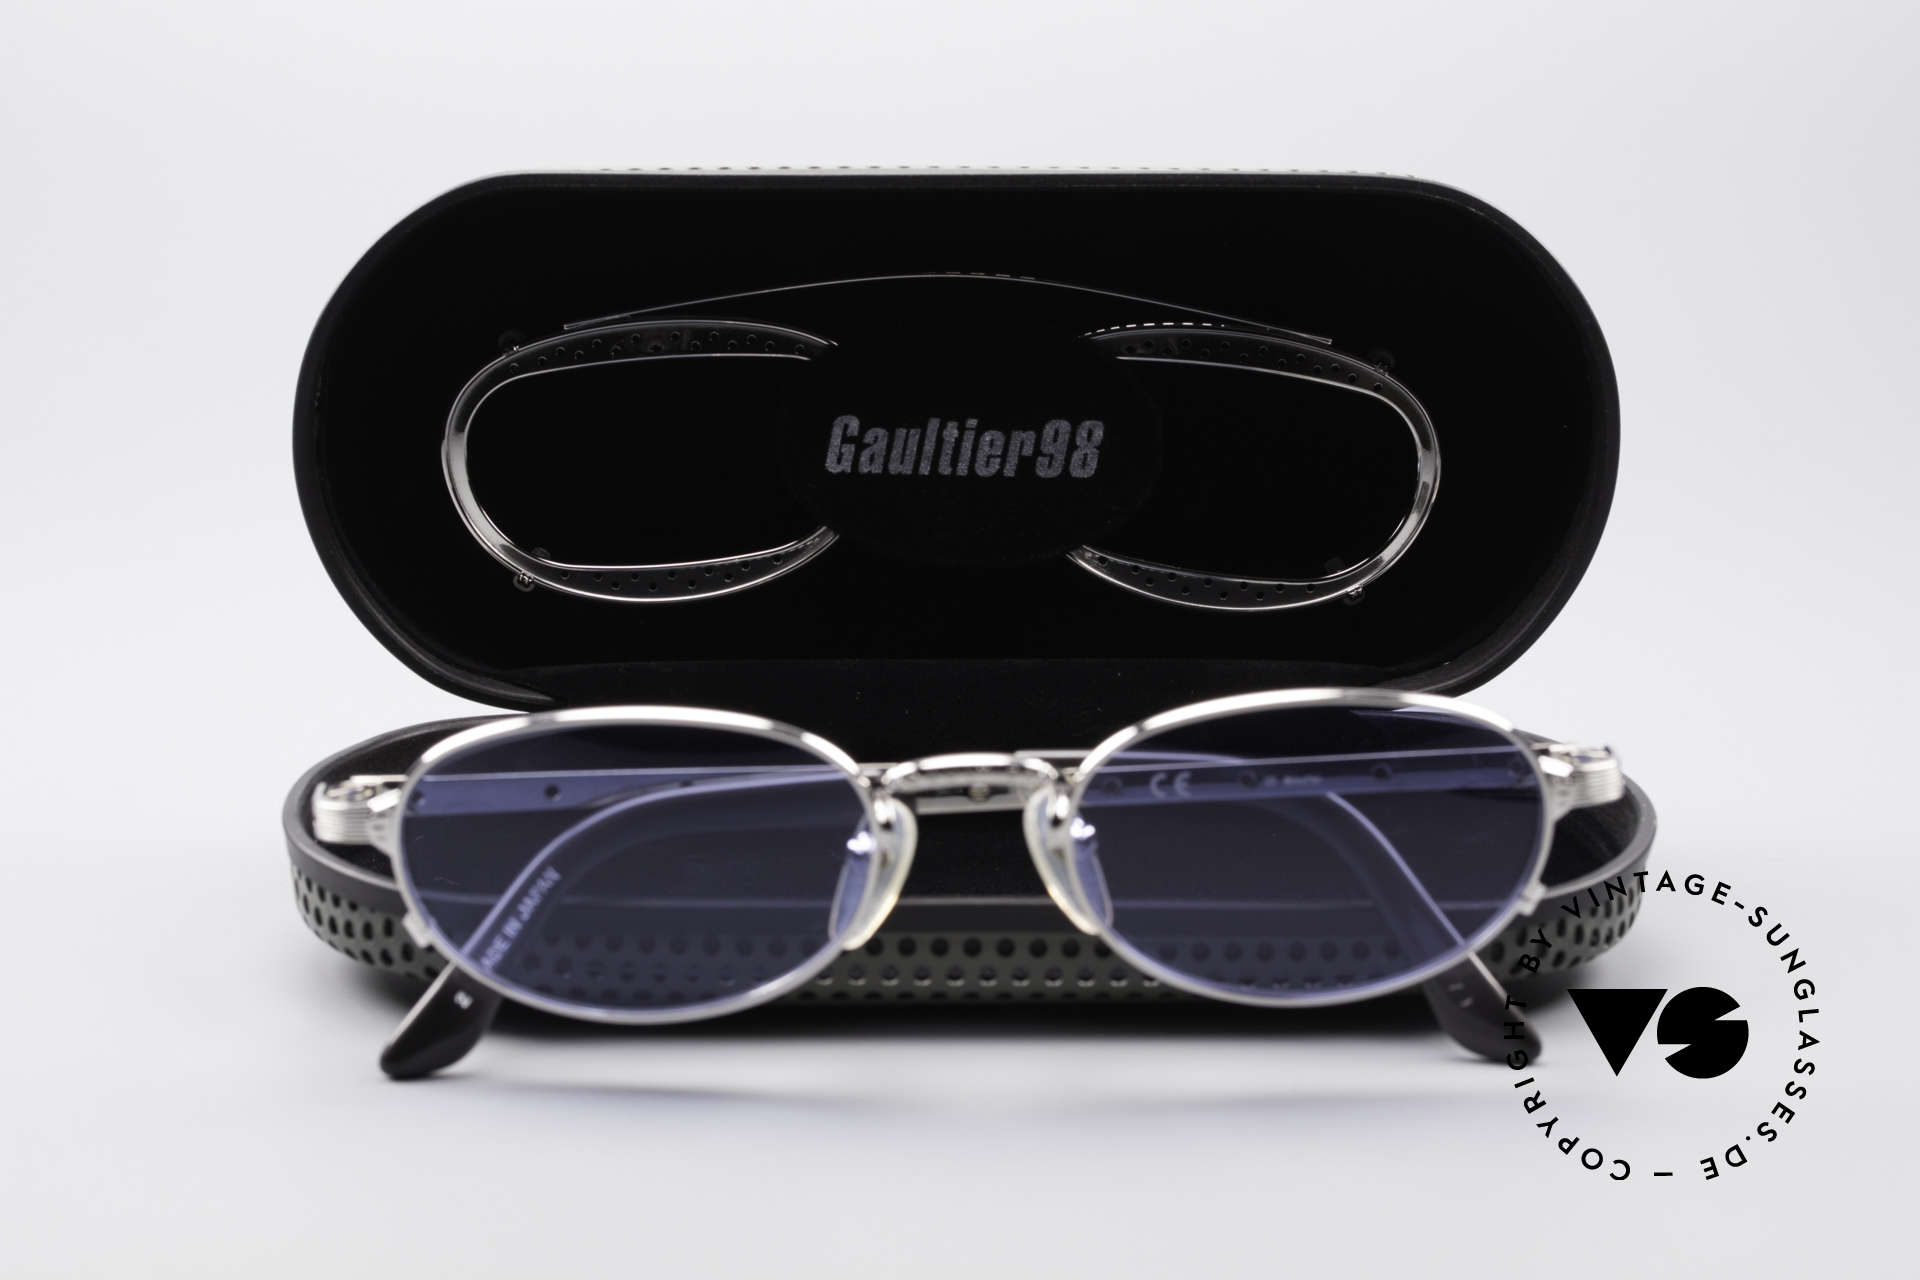 Jean Paul Gaultier 56-7116 Limited Vintage Glasses, new old stock, unworn, NOS (precious collector's item), Made for Men and Women